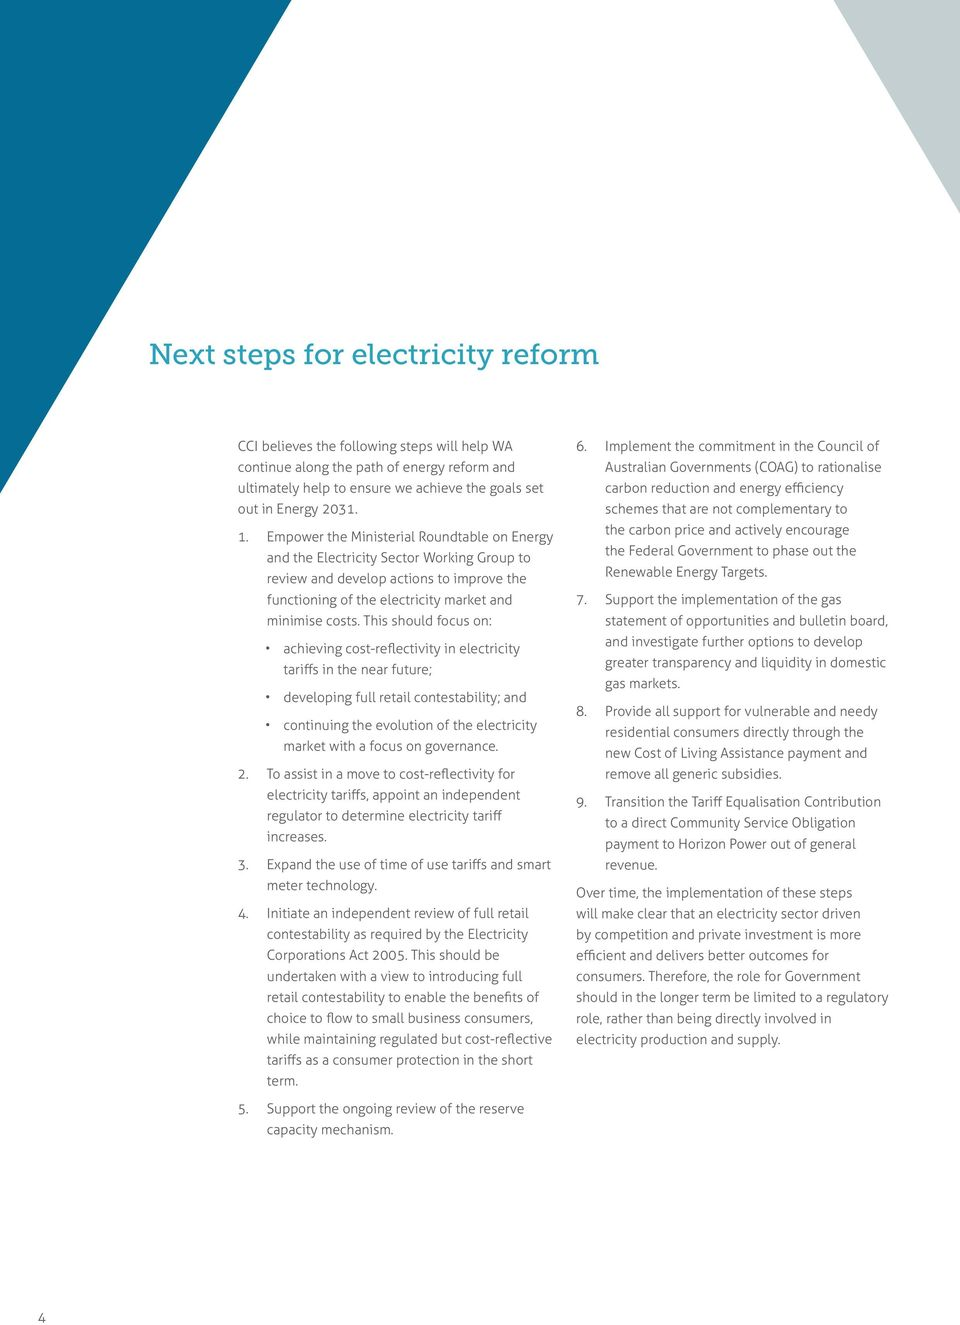 This should focus on: achieving cost-reflectivity in electricity tariffs in the near future; developing full retail contestability; and continuing the evolution of the electricity market with a focus